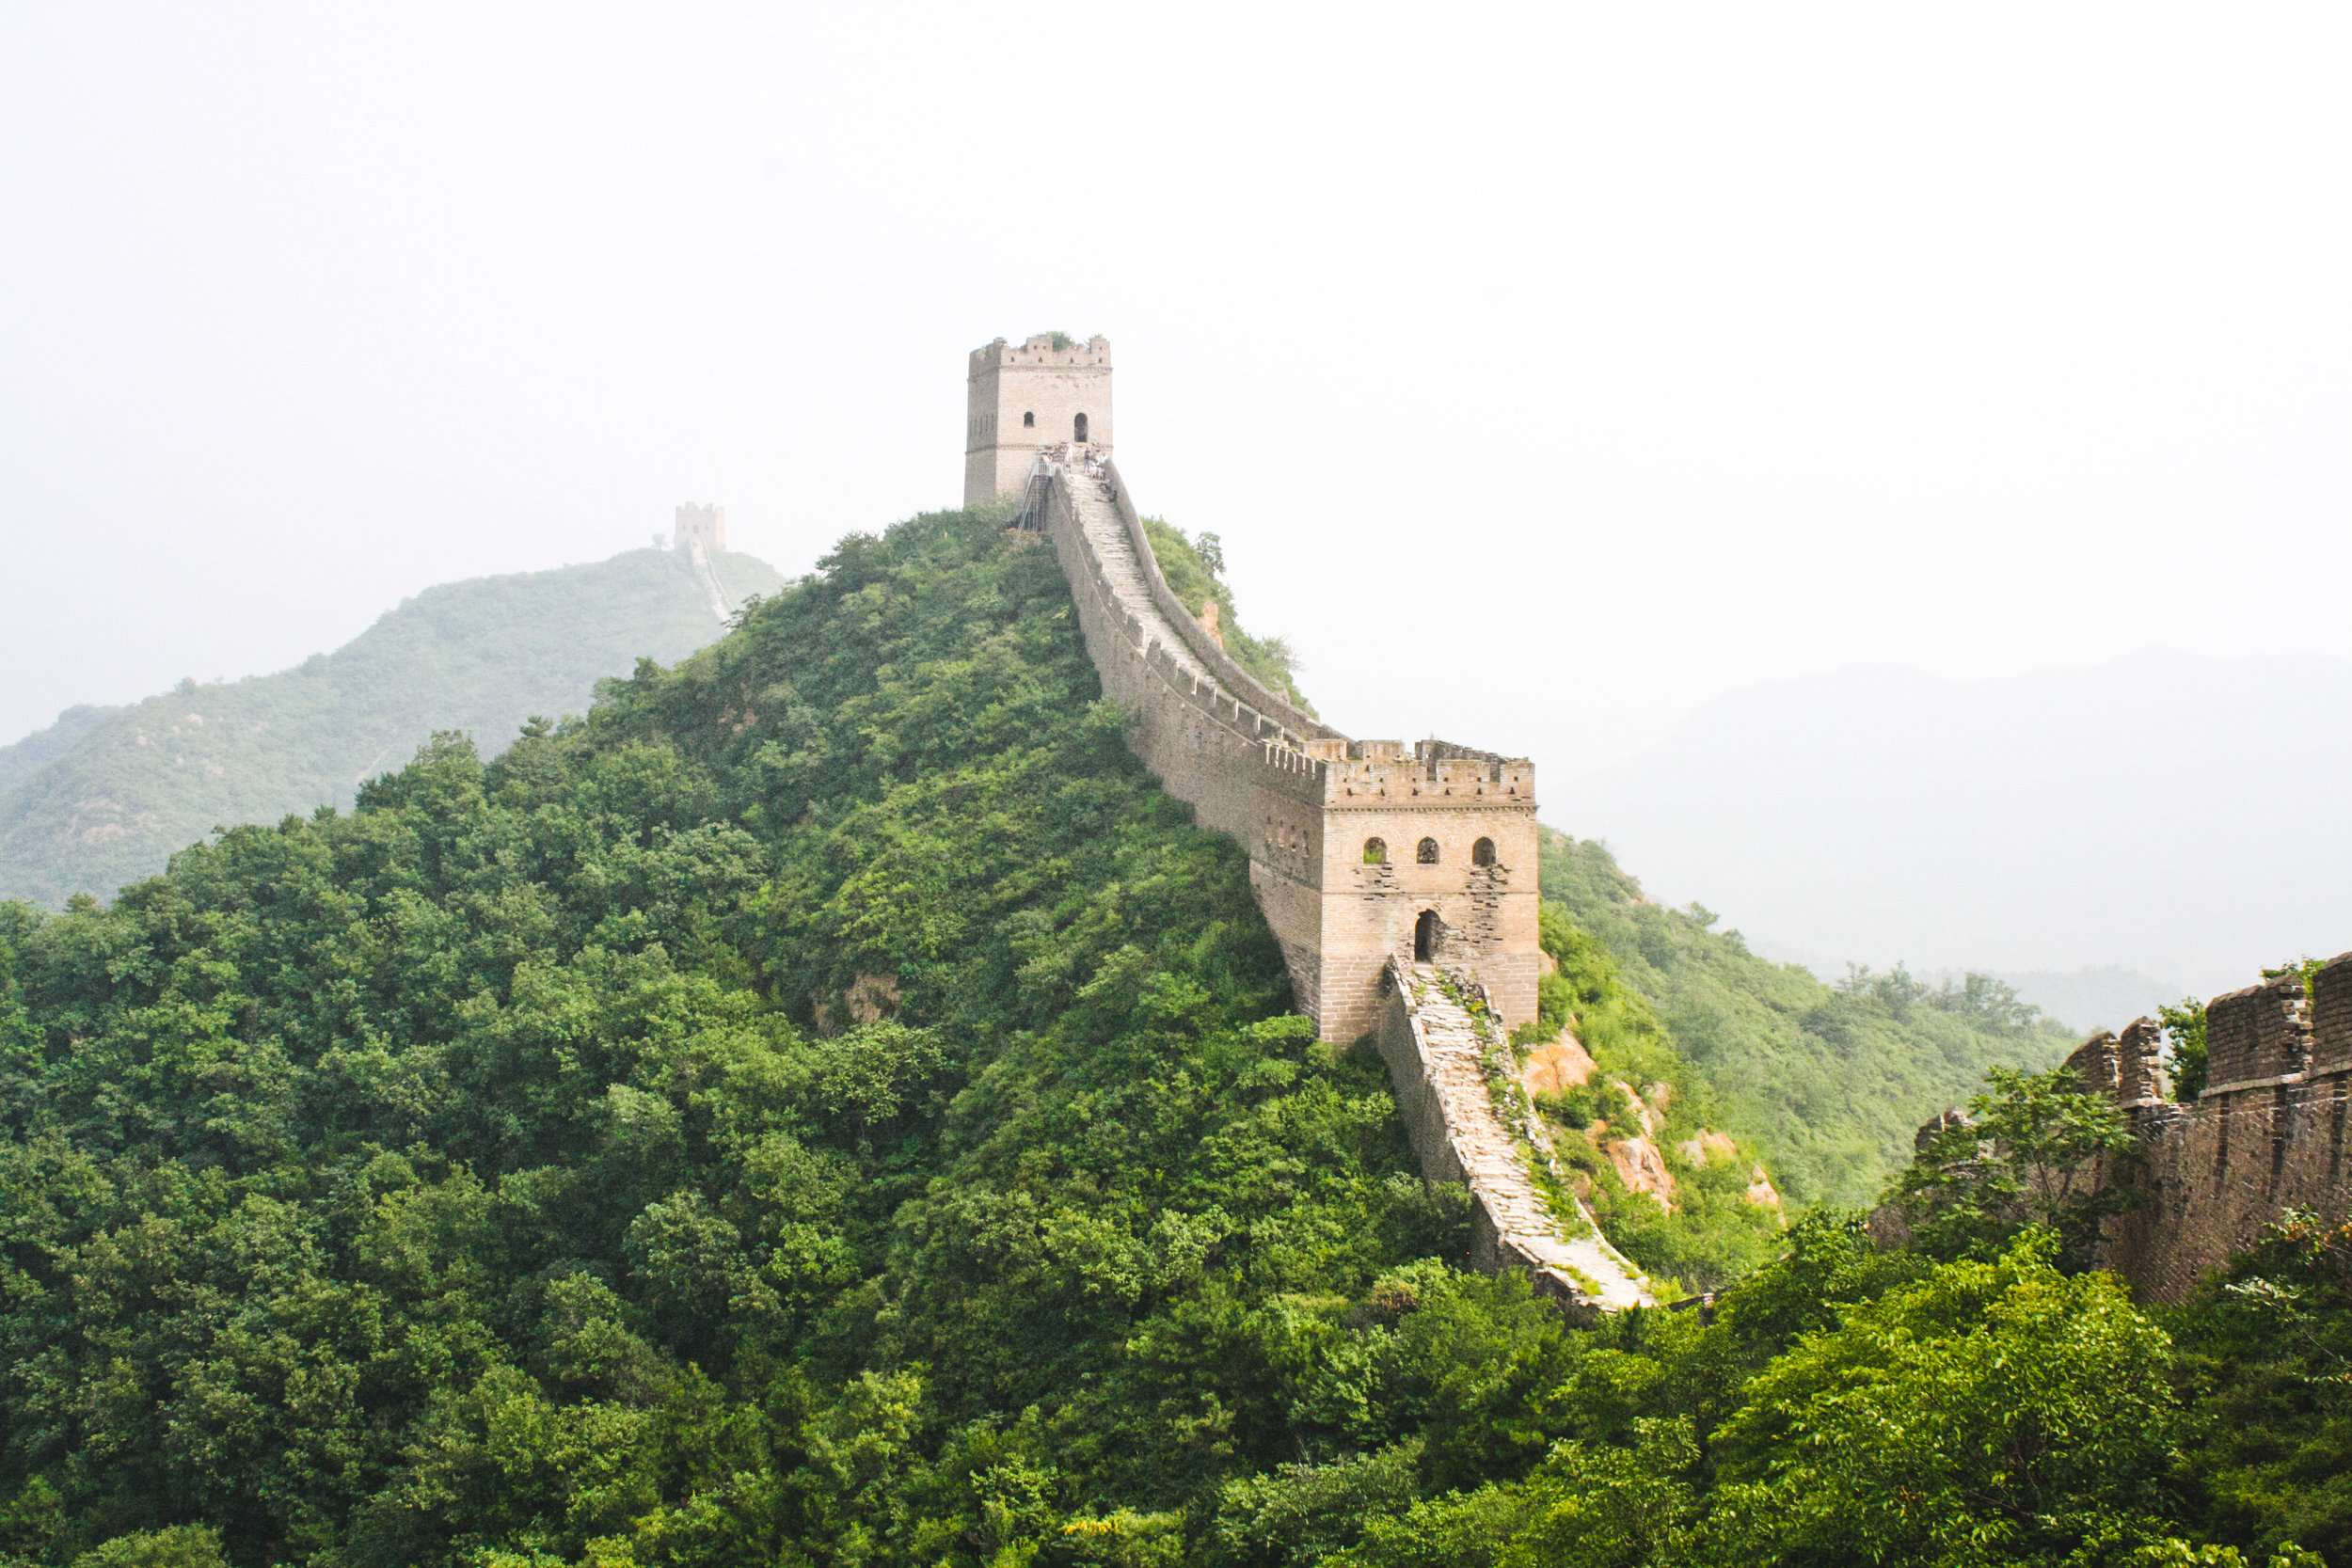 What is the best section of the Great Wall to visit?